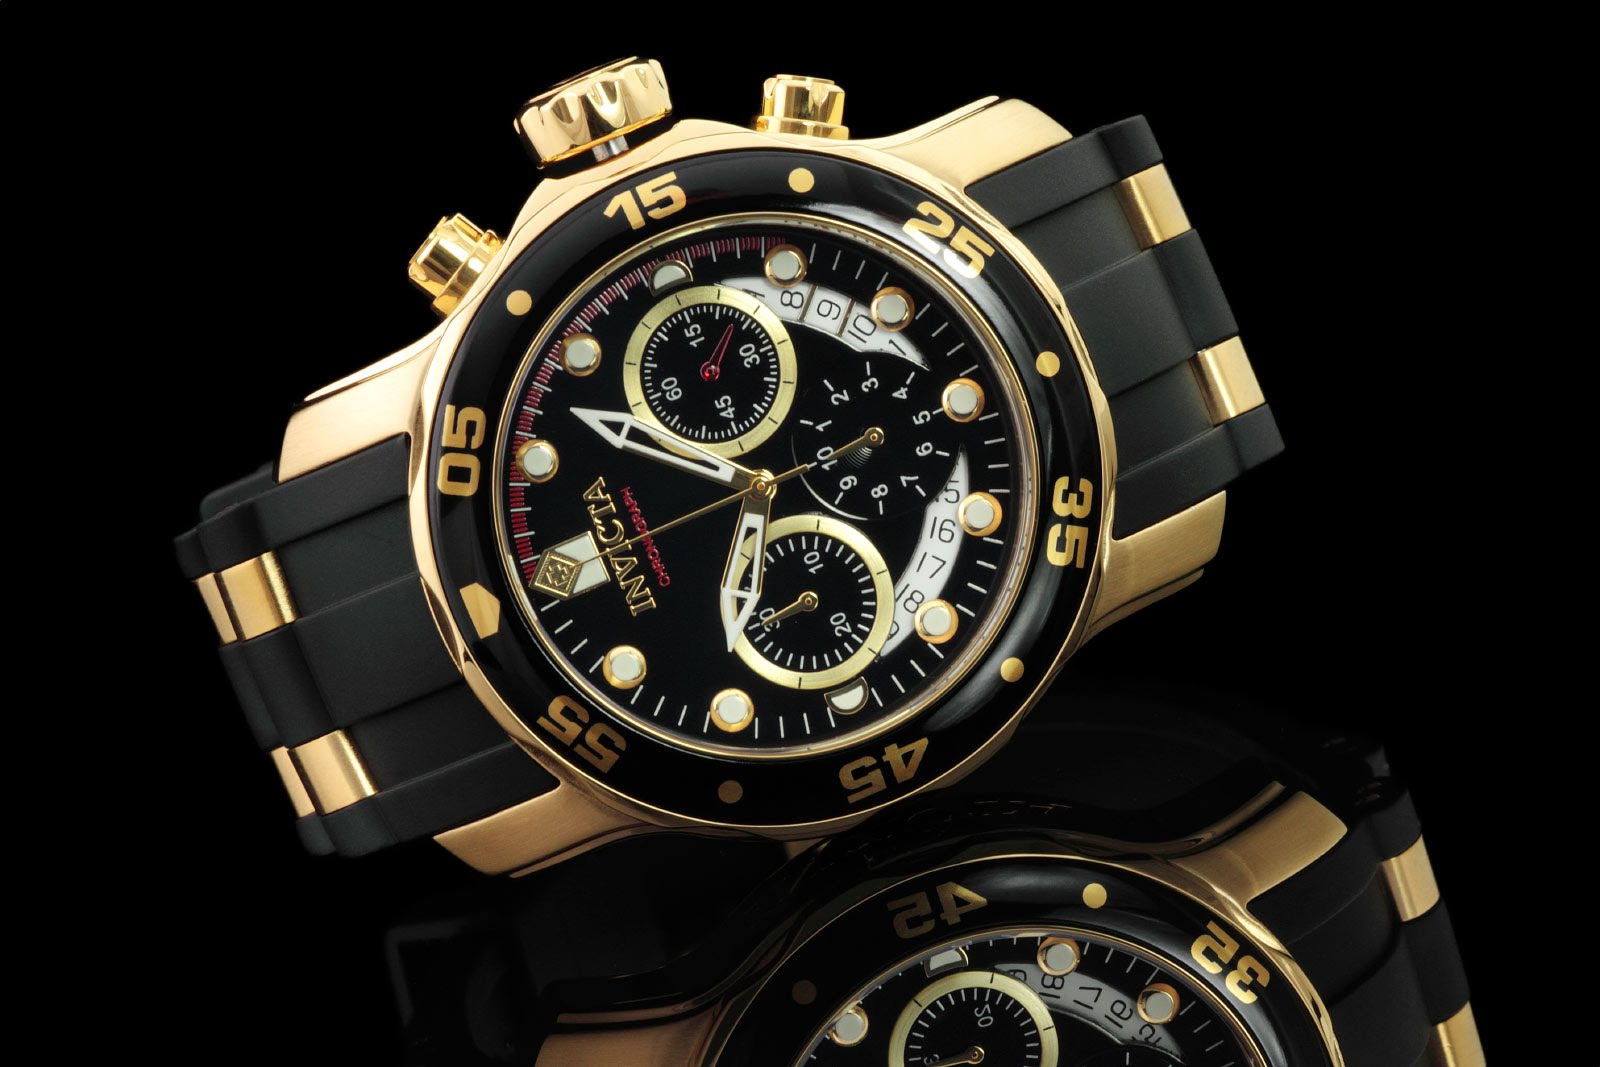 Invicta 6981 Pro Diver Watch Review